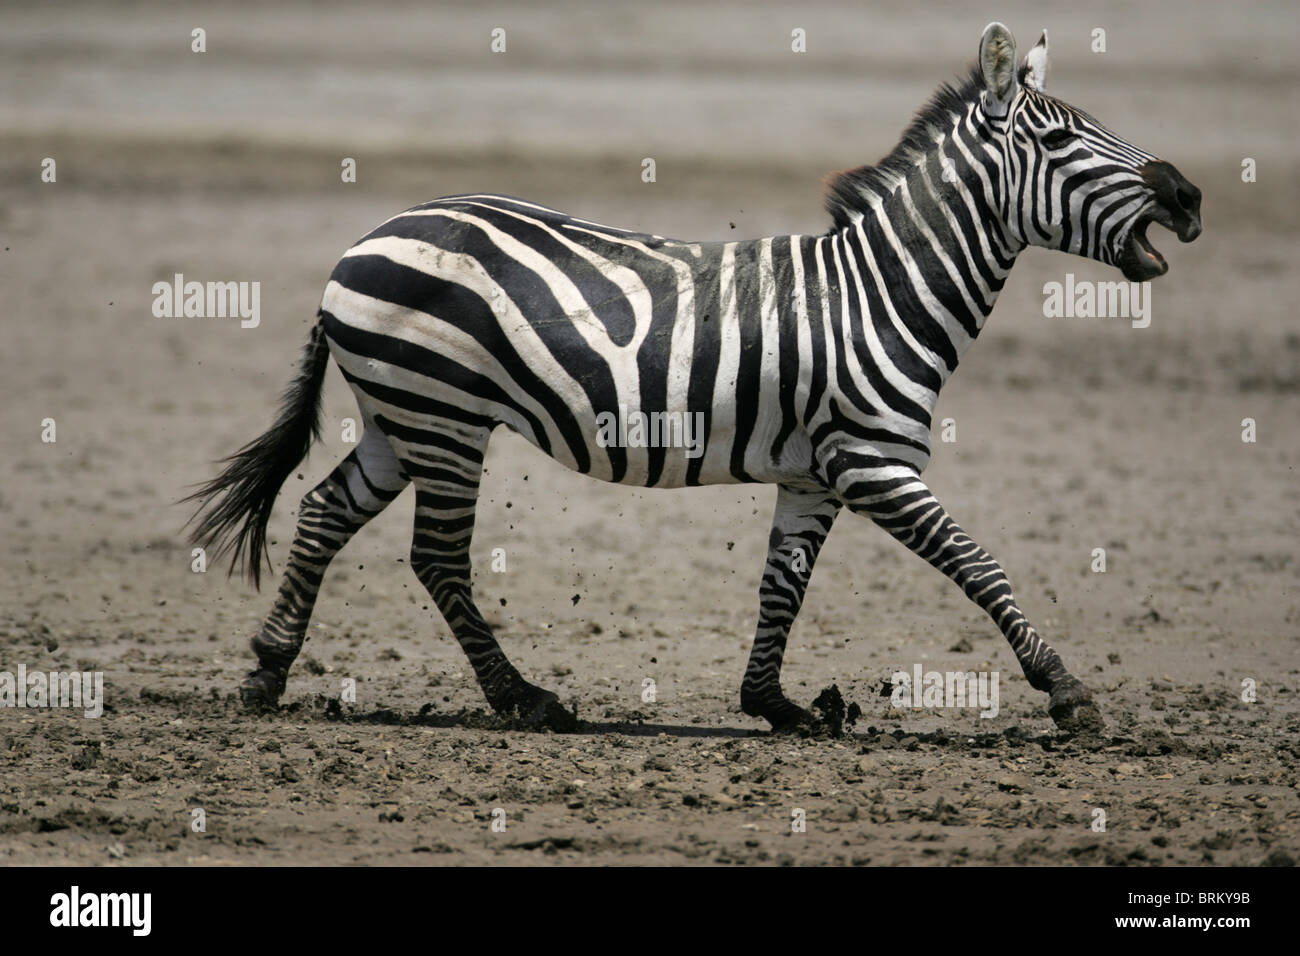 Running zebra calling with its mouth wide open - Stock Image